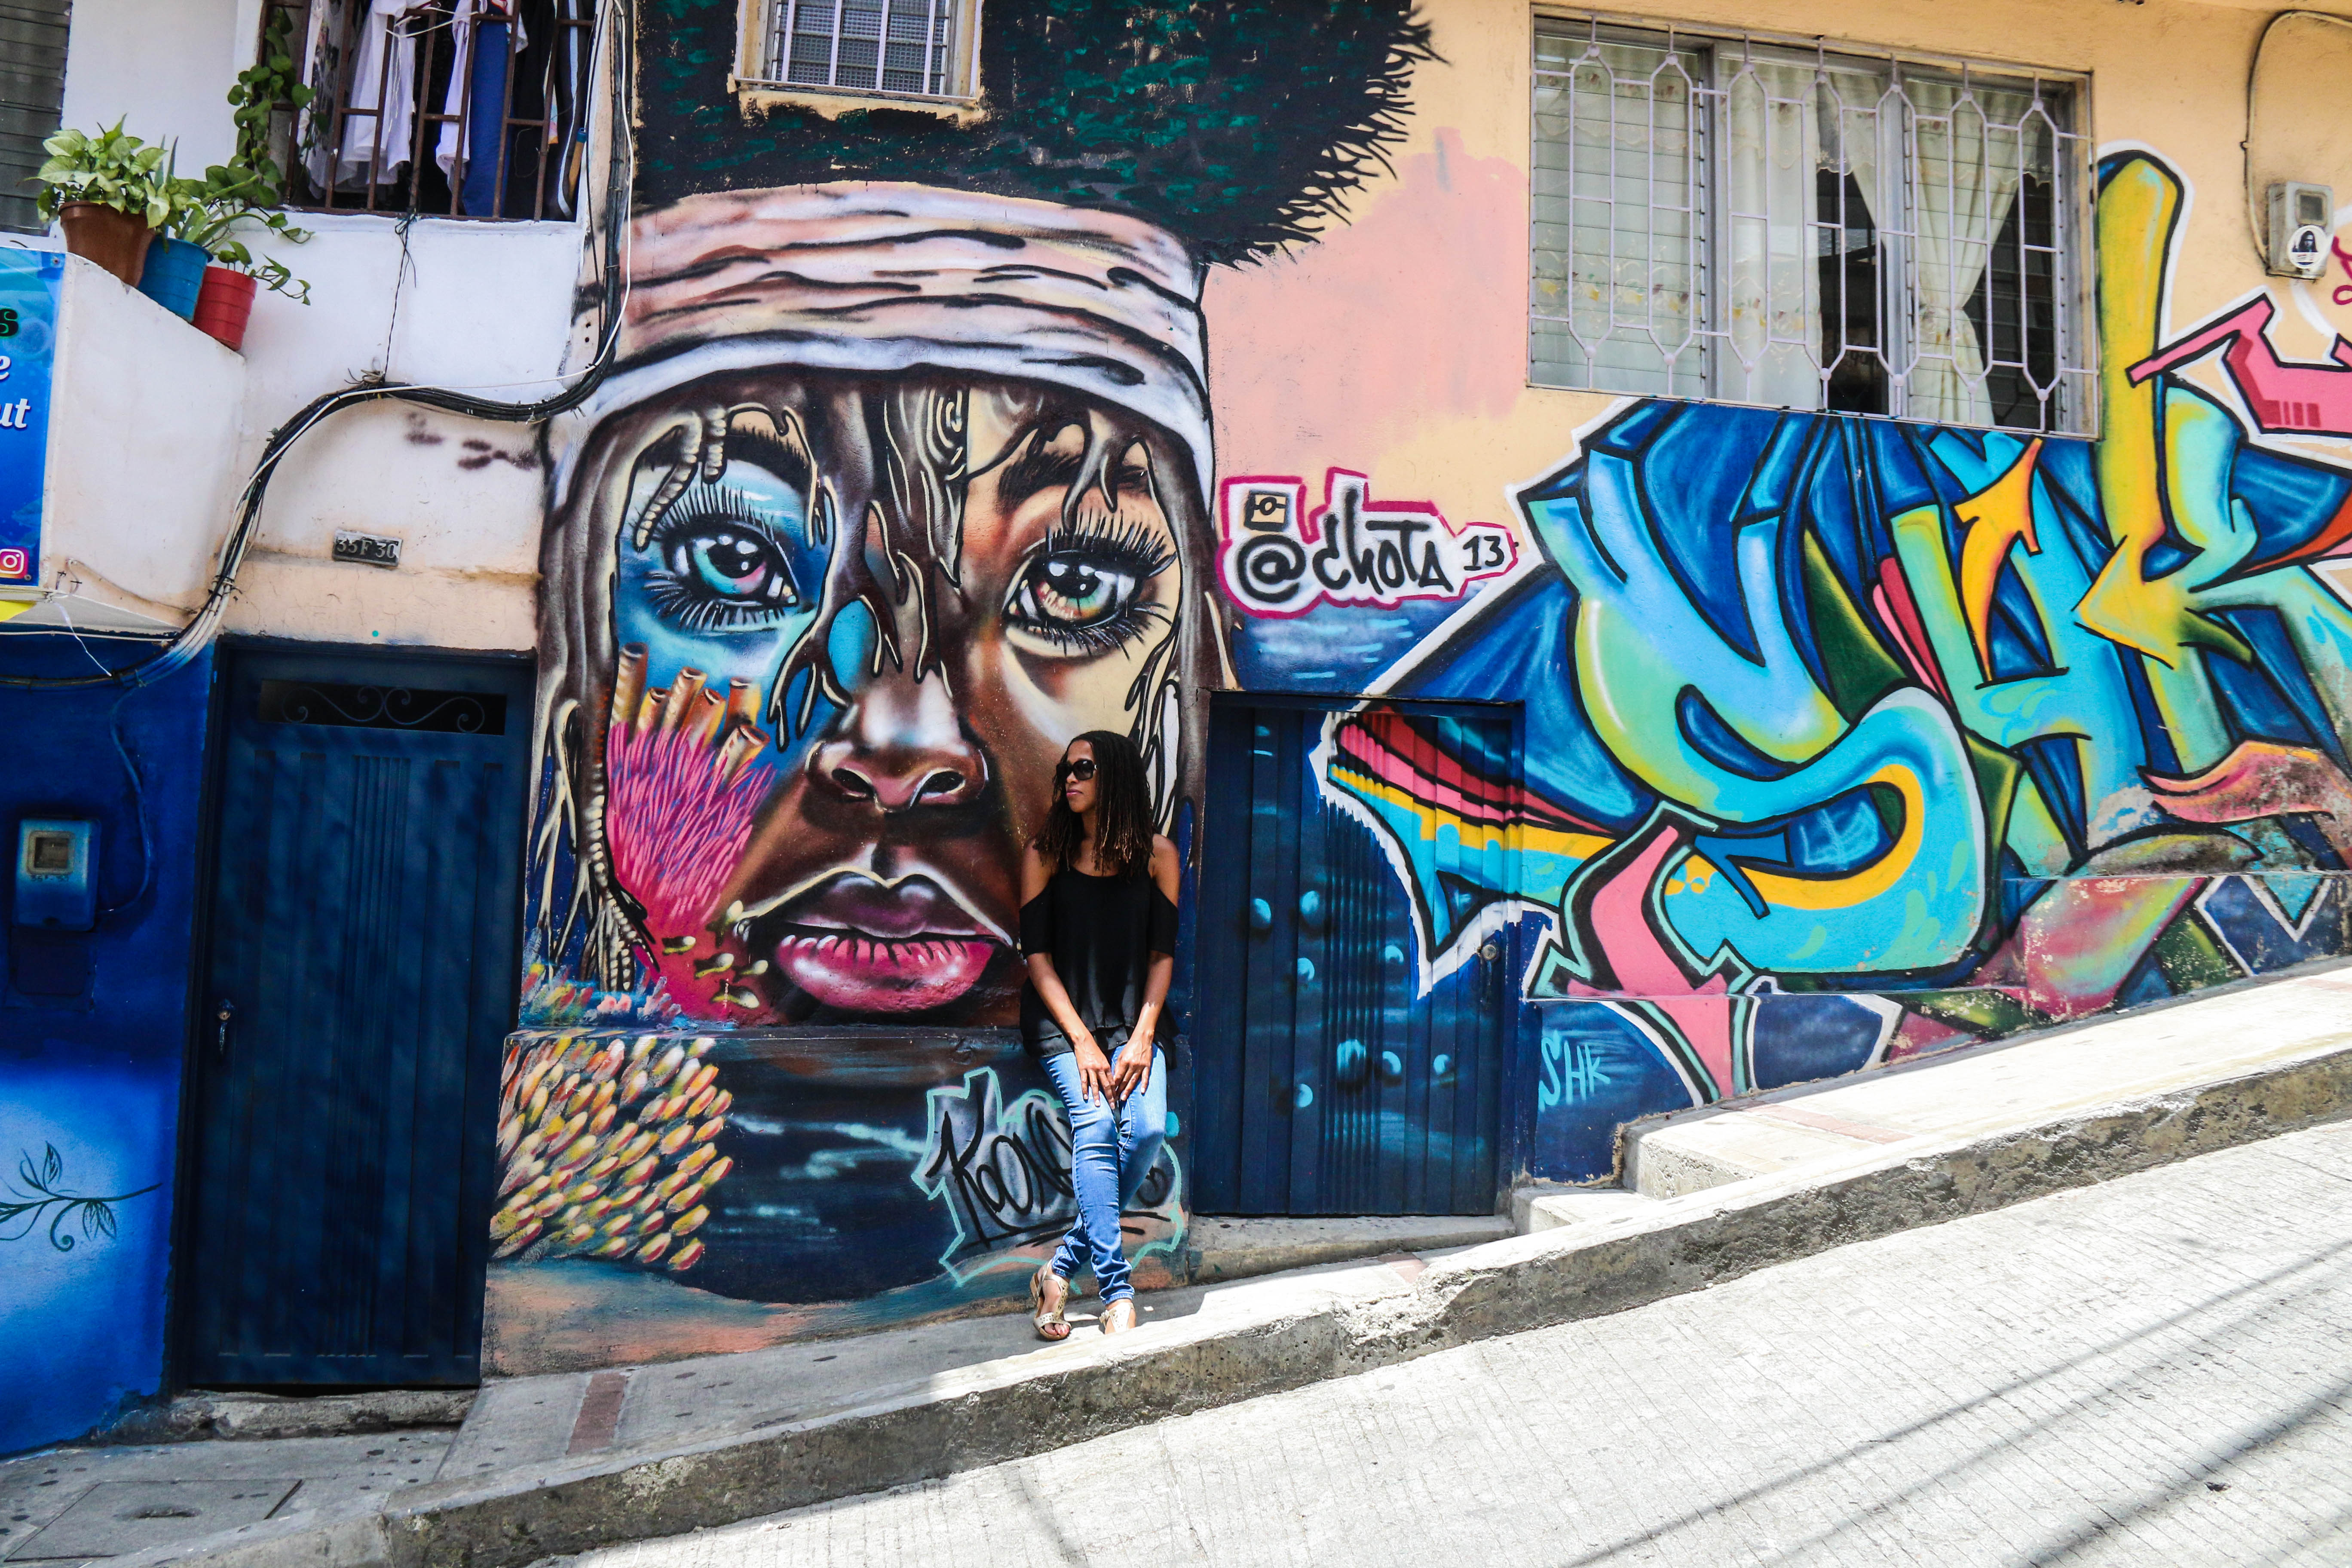 Comuna 13 - Why Visiting Medellin Should Be on Your Wish List